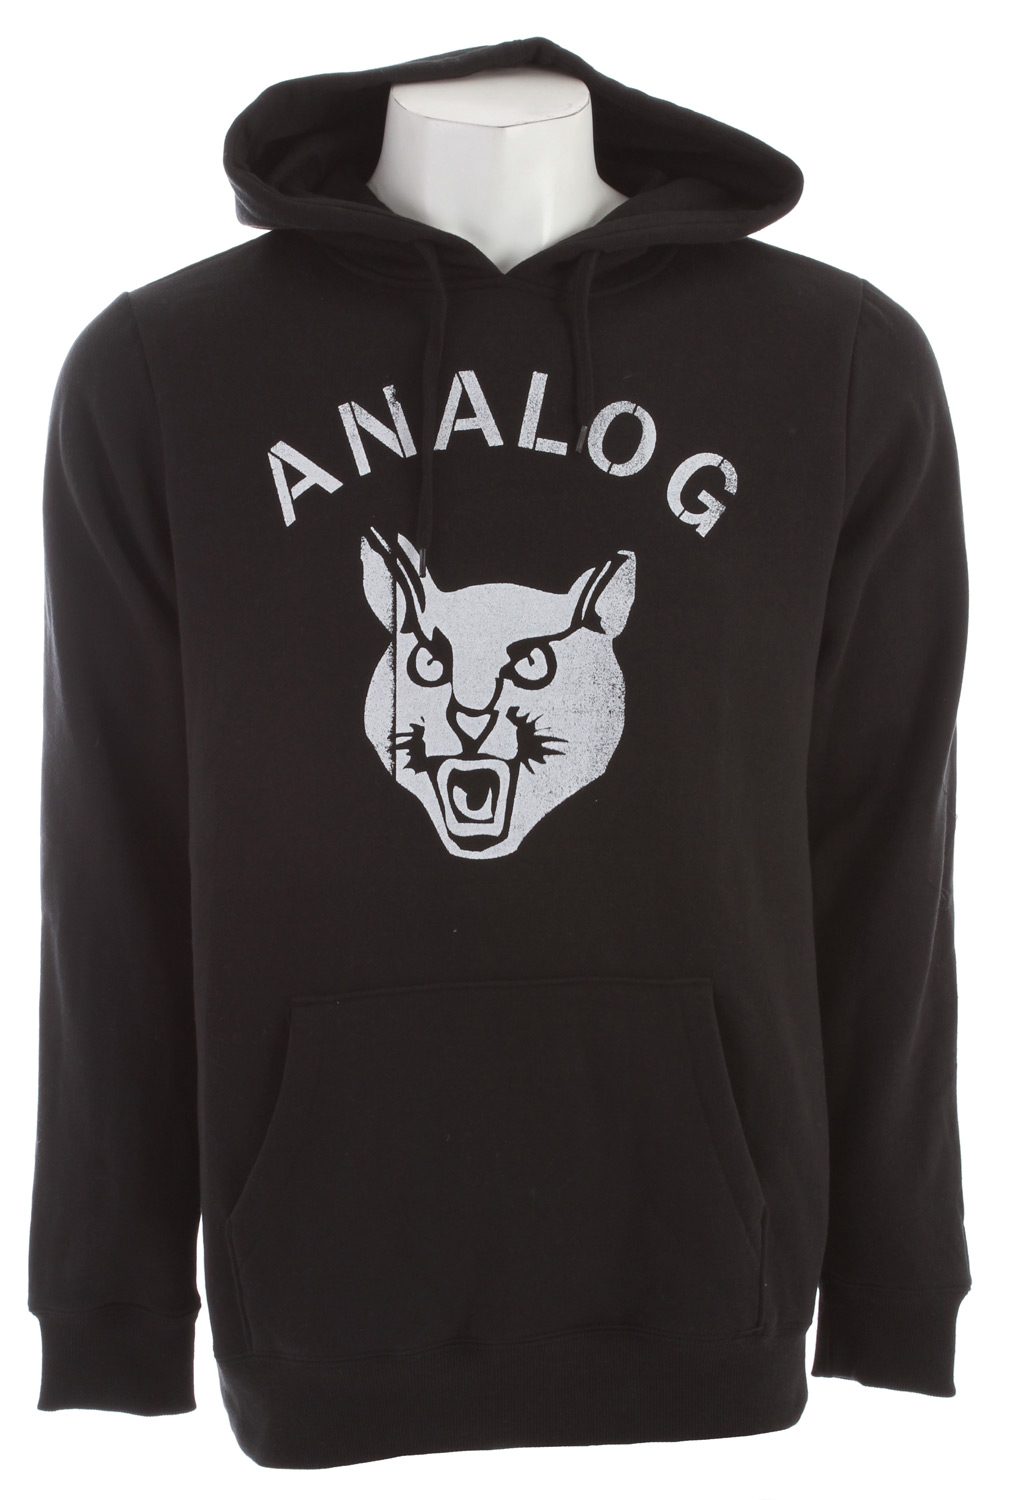 Key Features of the Analog Stray Cat Hoodie: Regular fit basic zip front sweatshirt with chest print 300gm 60% Cotton / 40% Polyester. - $38.95